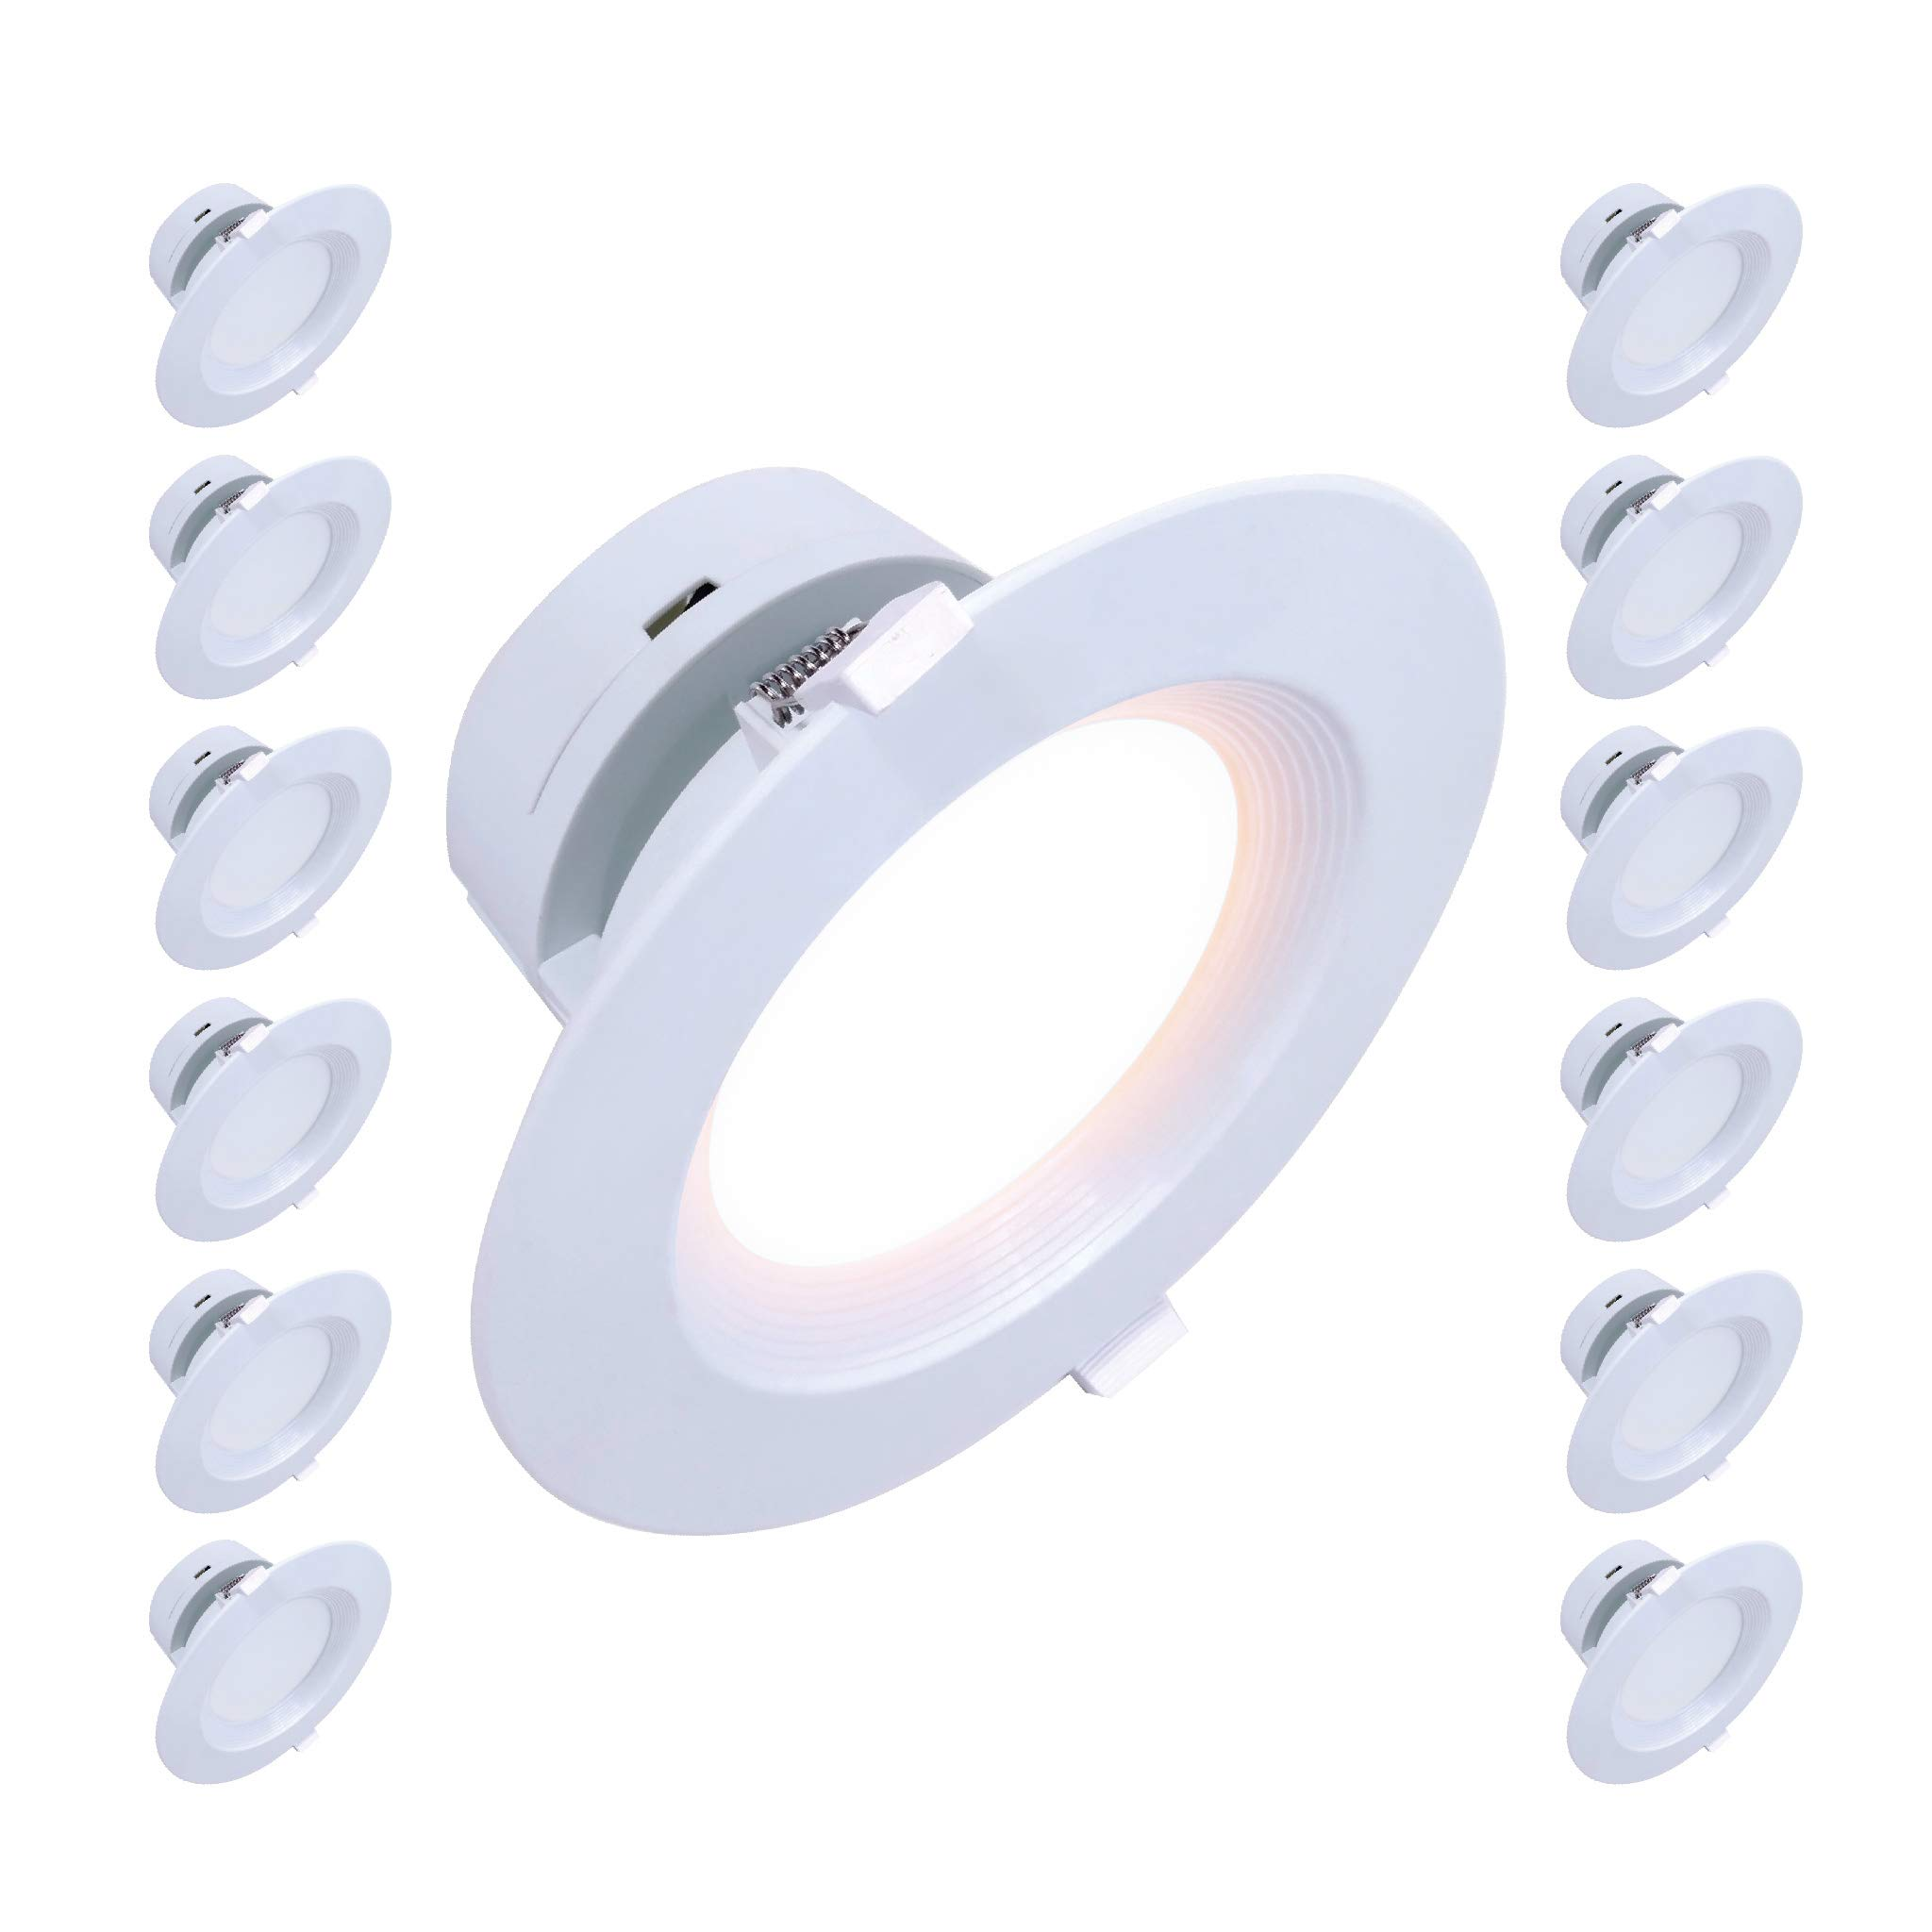 4'' Inch J-Box LED Canless Downlight; 7W=65/75W Equivalent; 40,000 Life Hours; Dimmable to 5%; Wet Location Rated; 5 Year Warranty; 120V; 550 Lumens; CRI>90; Soft White 2700K- (12 Pack)